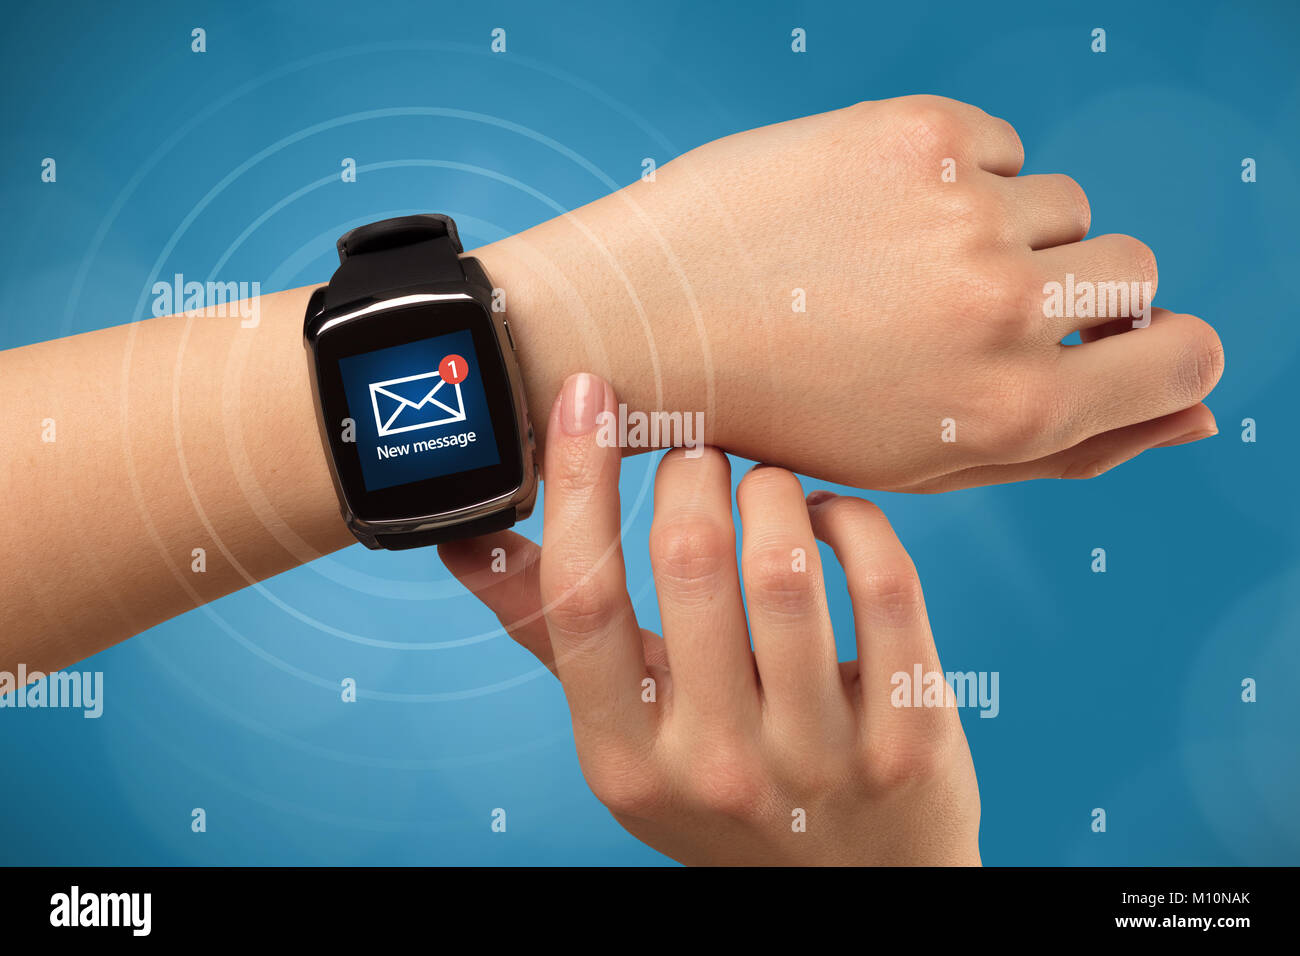 Female hand receives new message on her smartwatch - Stock Image